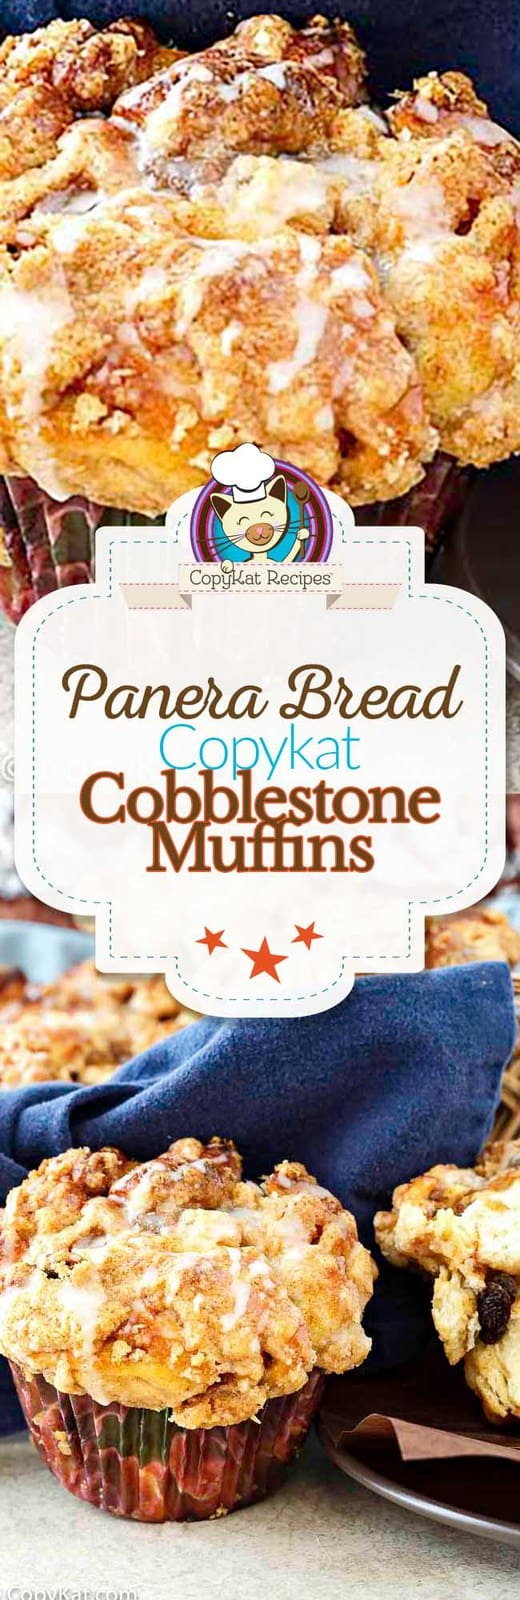 Recreate your own homemade Panera Bread Cobblestone muffins from scratch at home with this copycat recipe.